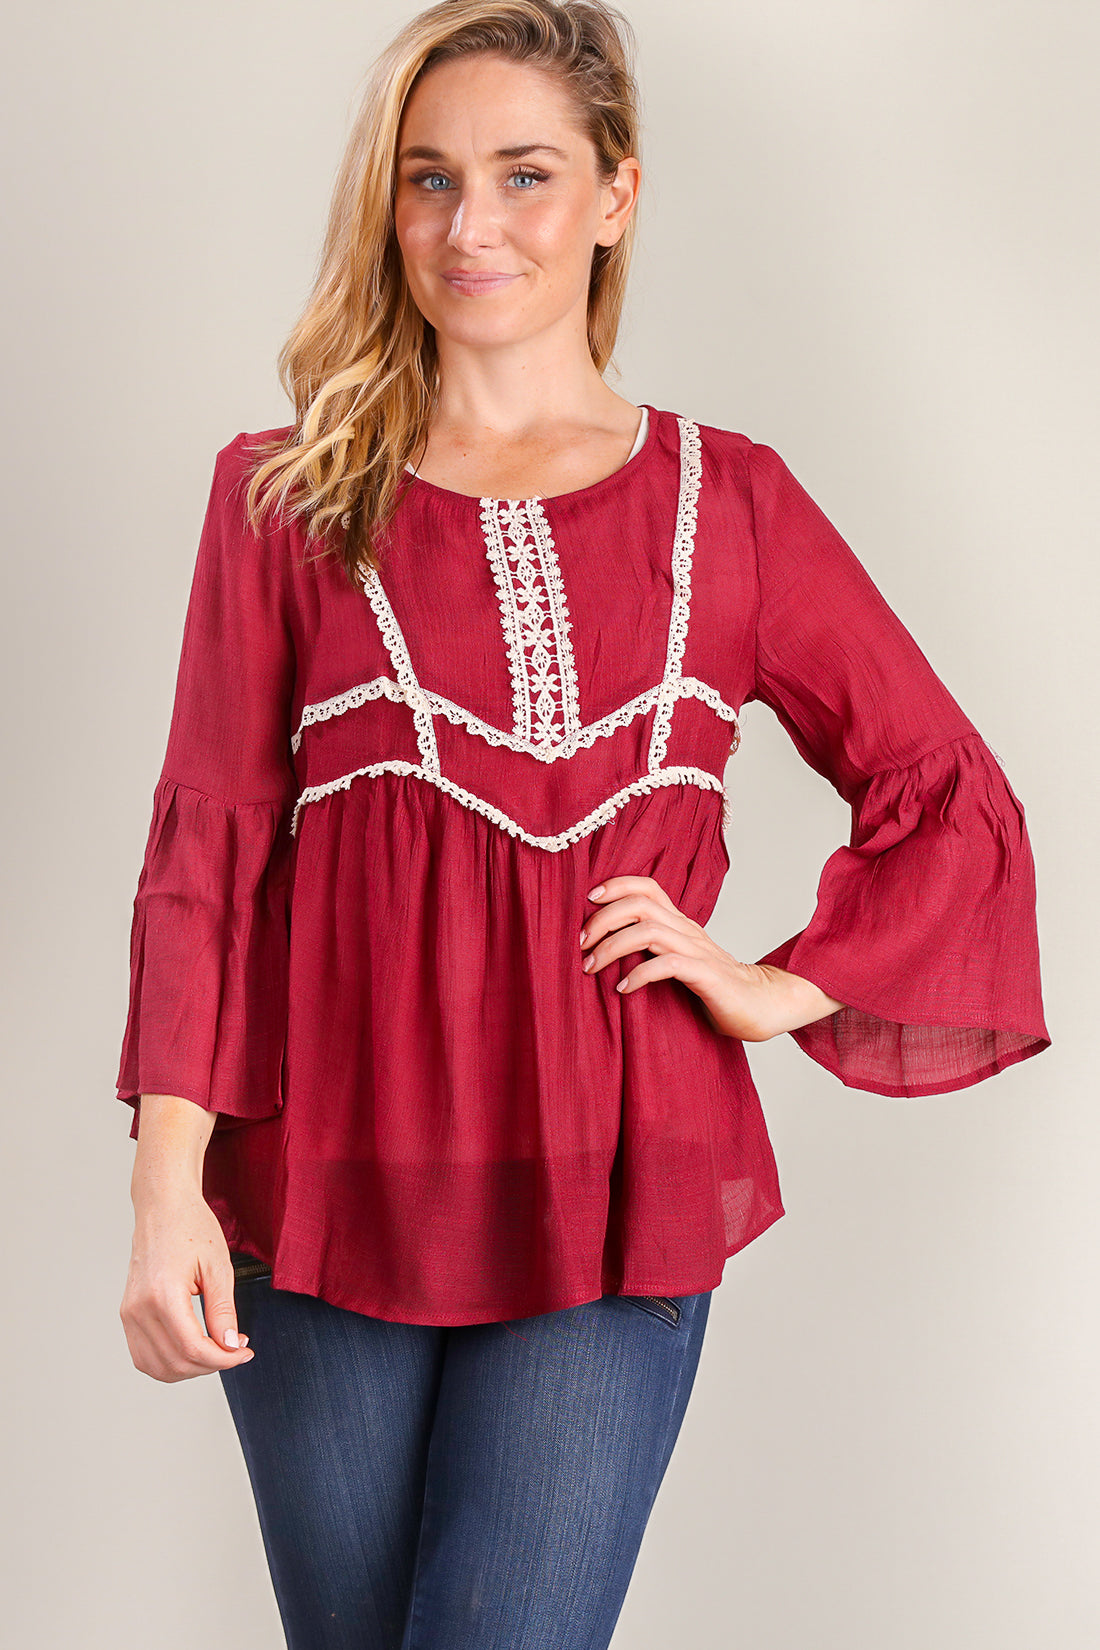 Burgundy Crochet Design Blouse